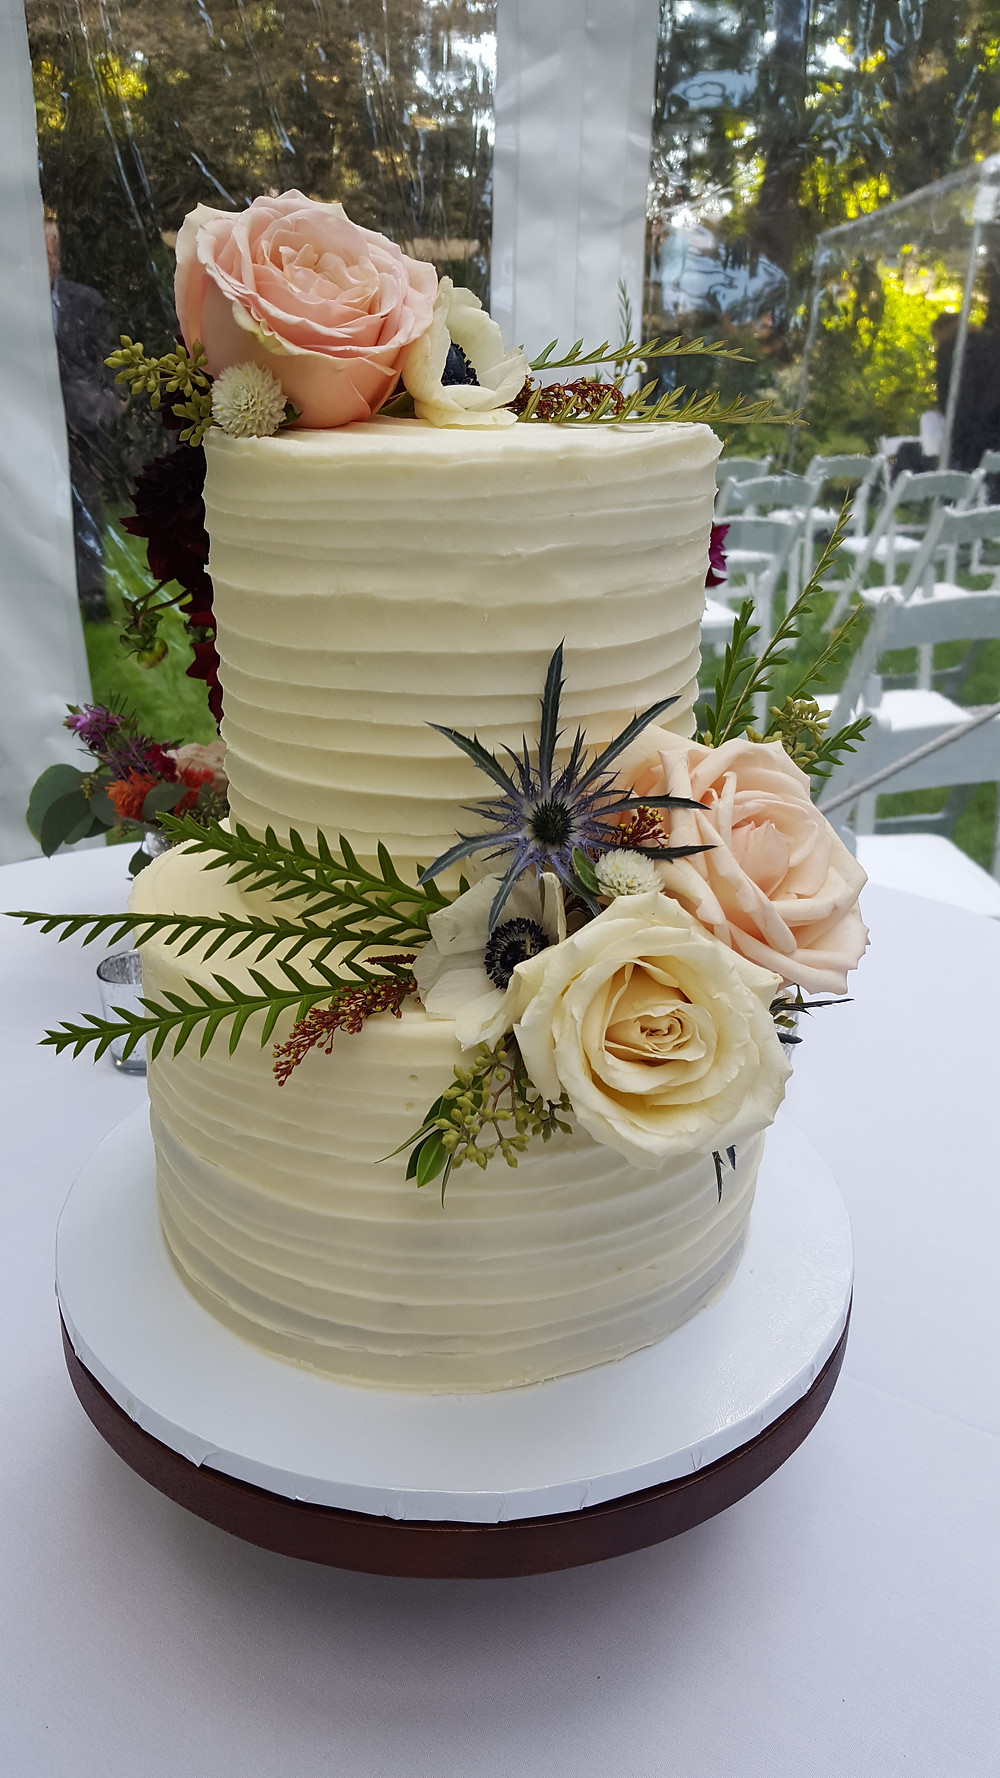 Wedding Cake by Haute Cakes. Music by Rondo String Quartet. www.RondoStringQuartet.com